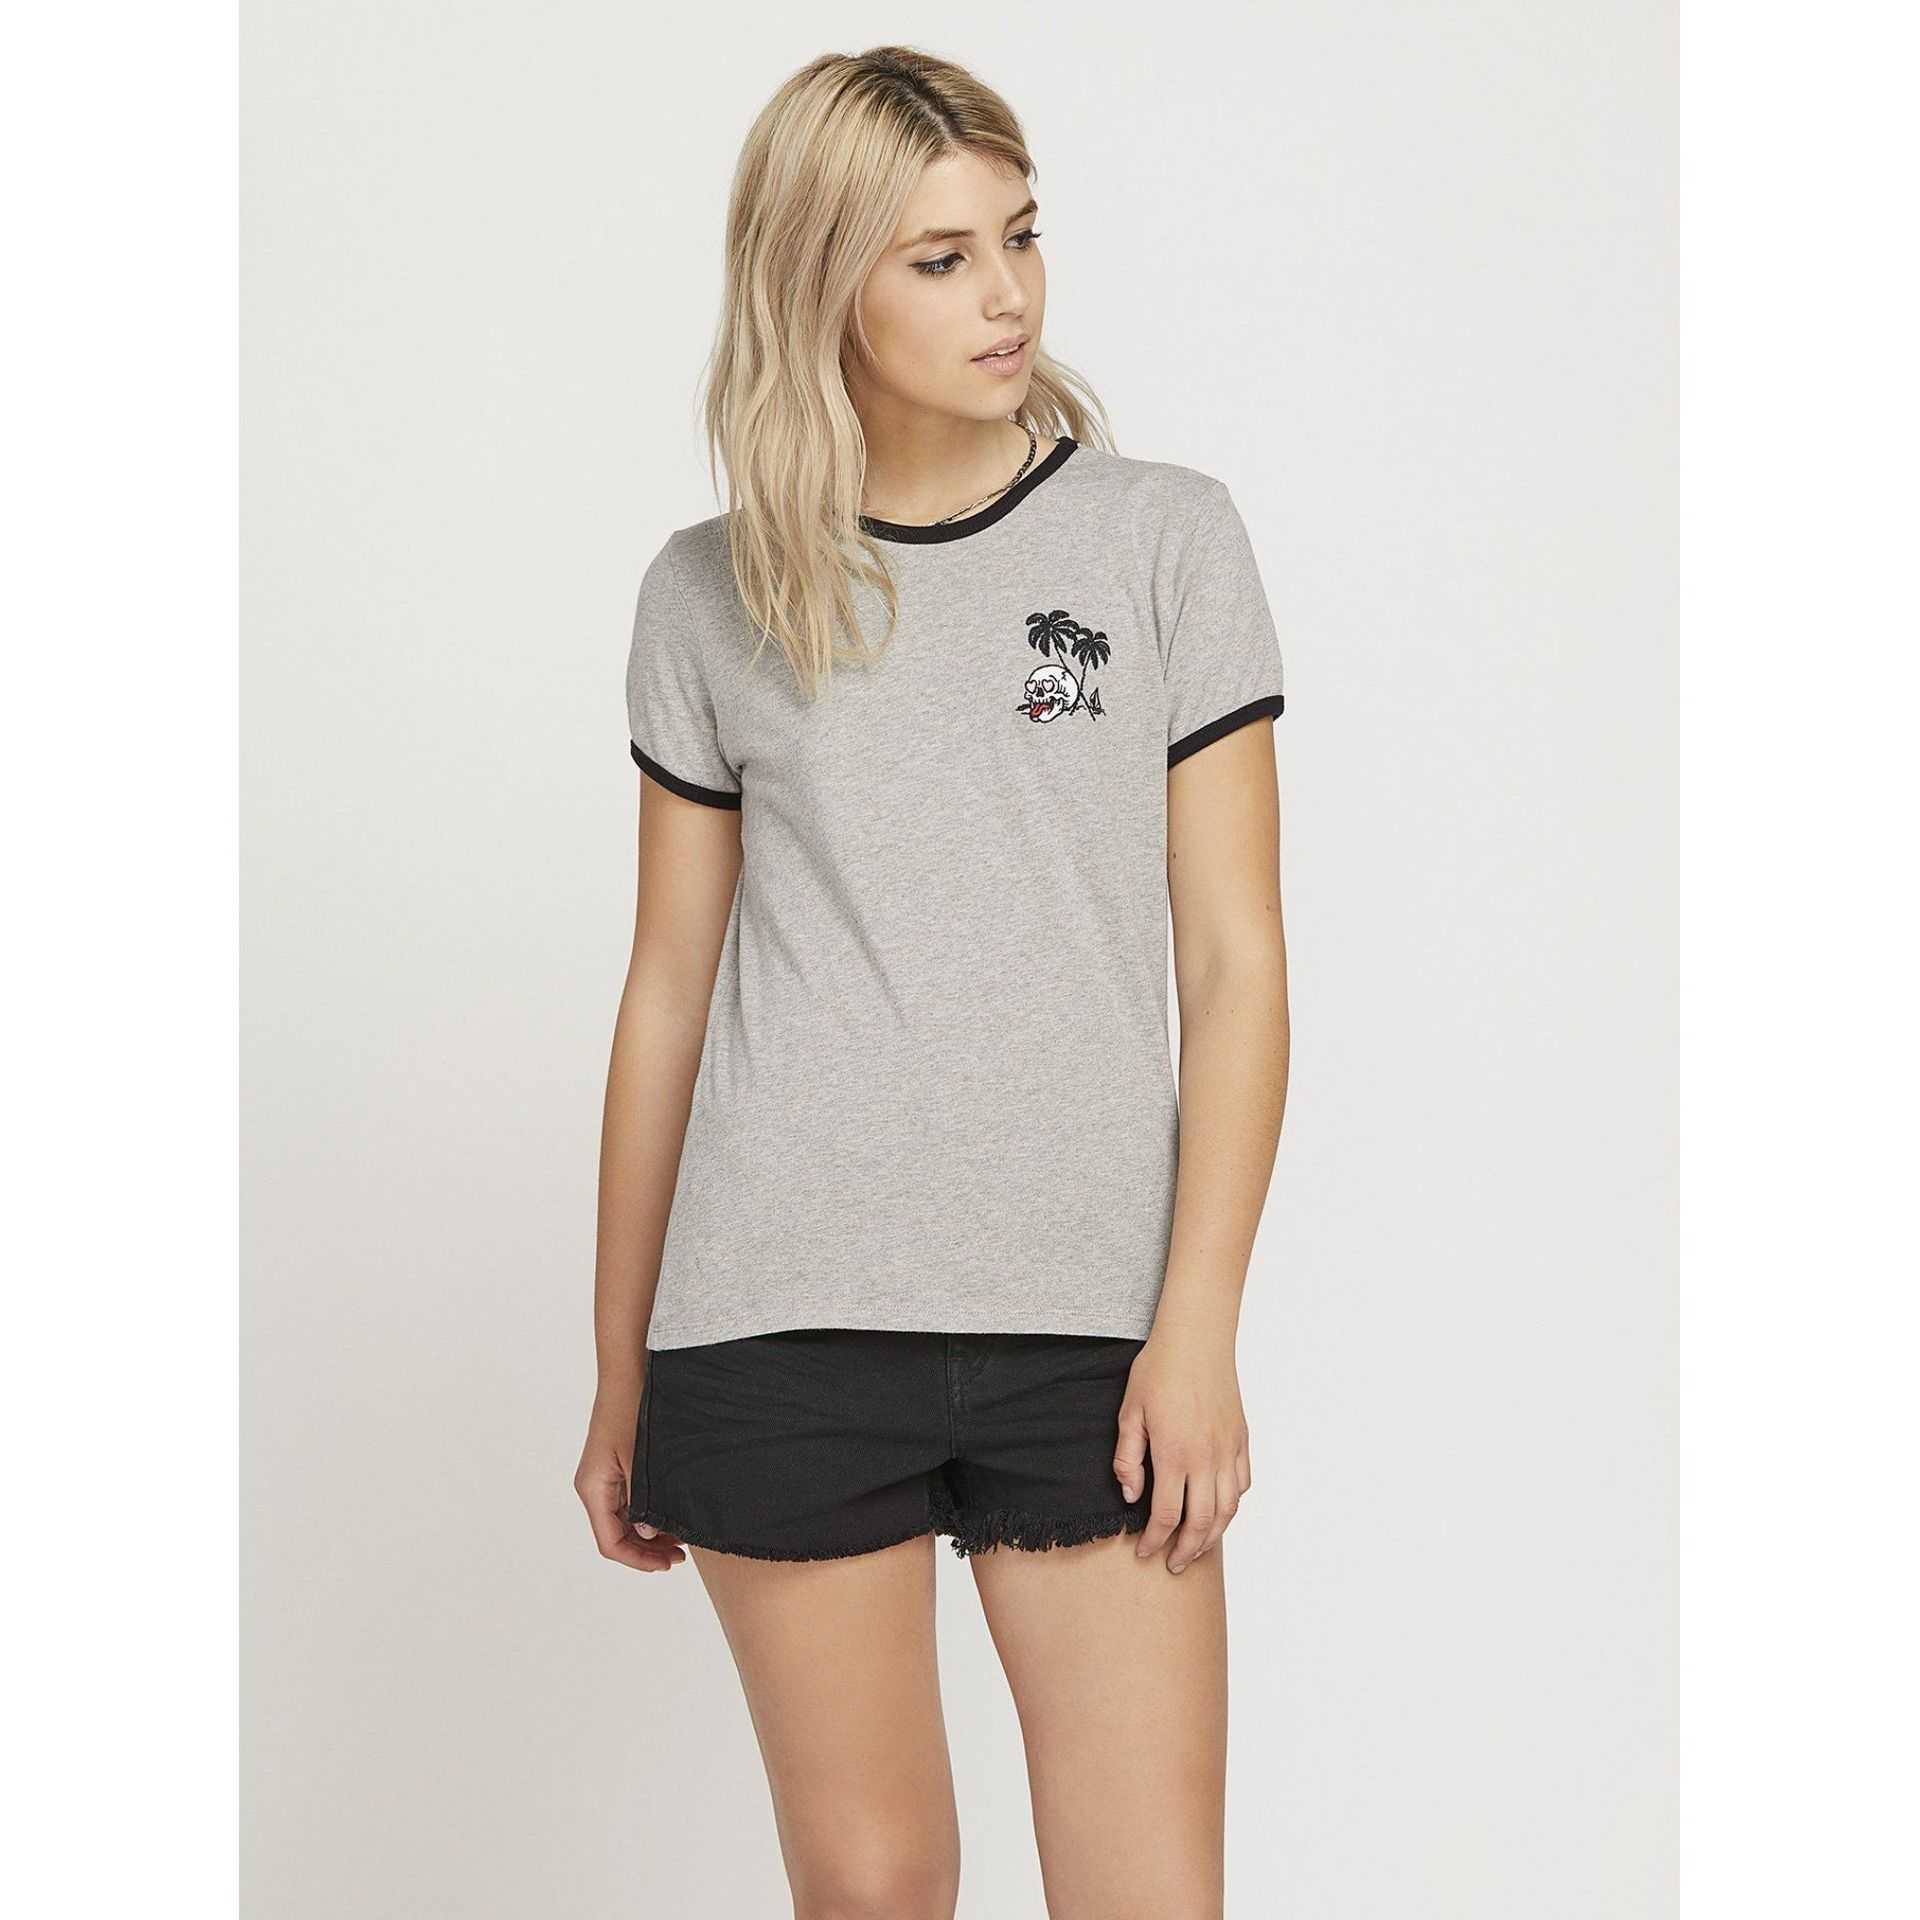 T-SHIRT VOLCOM KEEP GOIN B3511950-HEATHER GREY 1